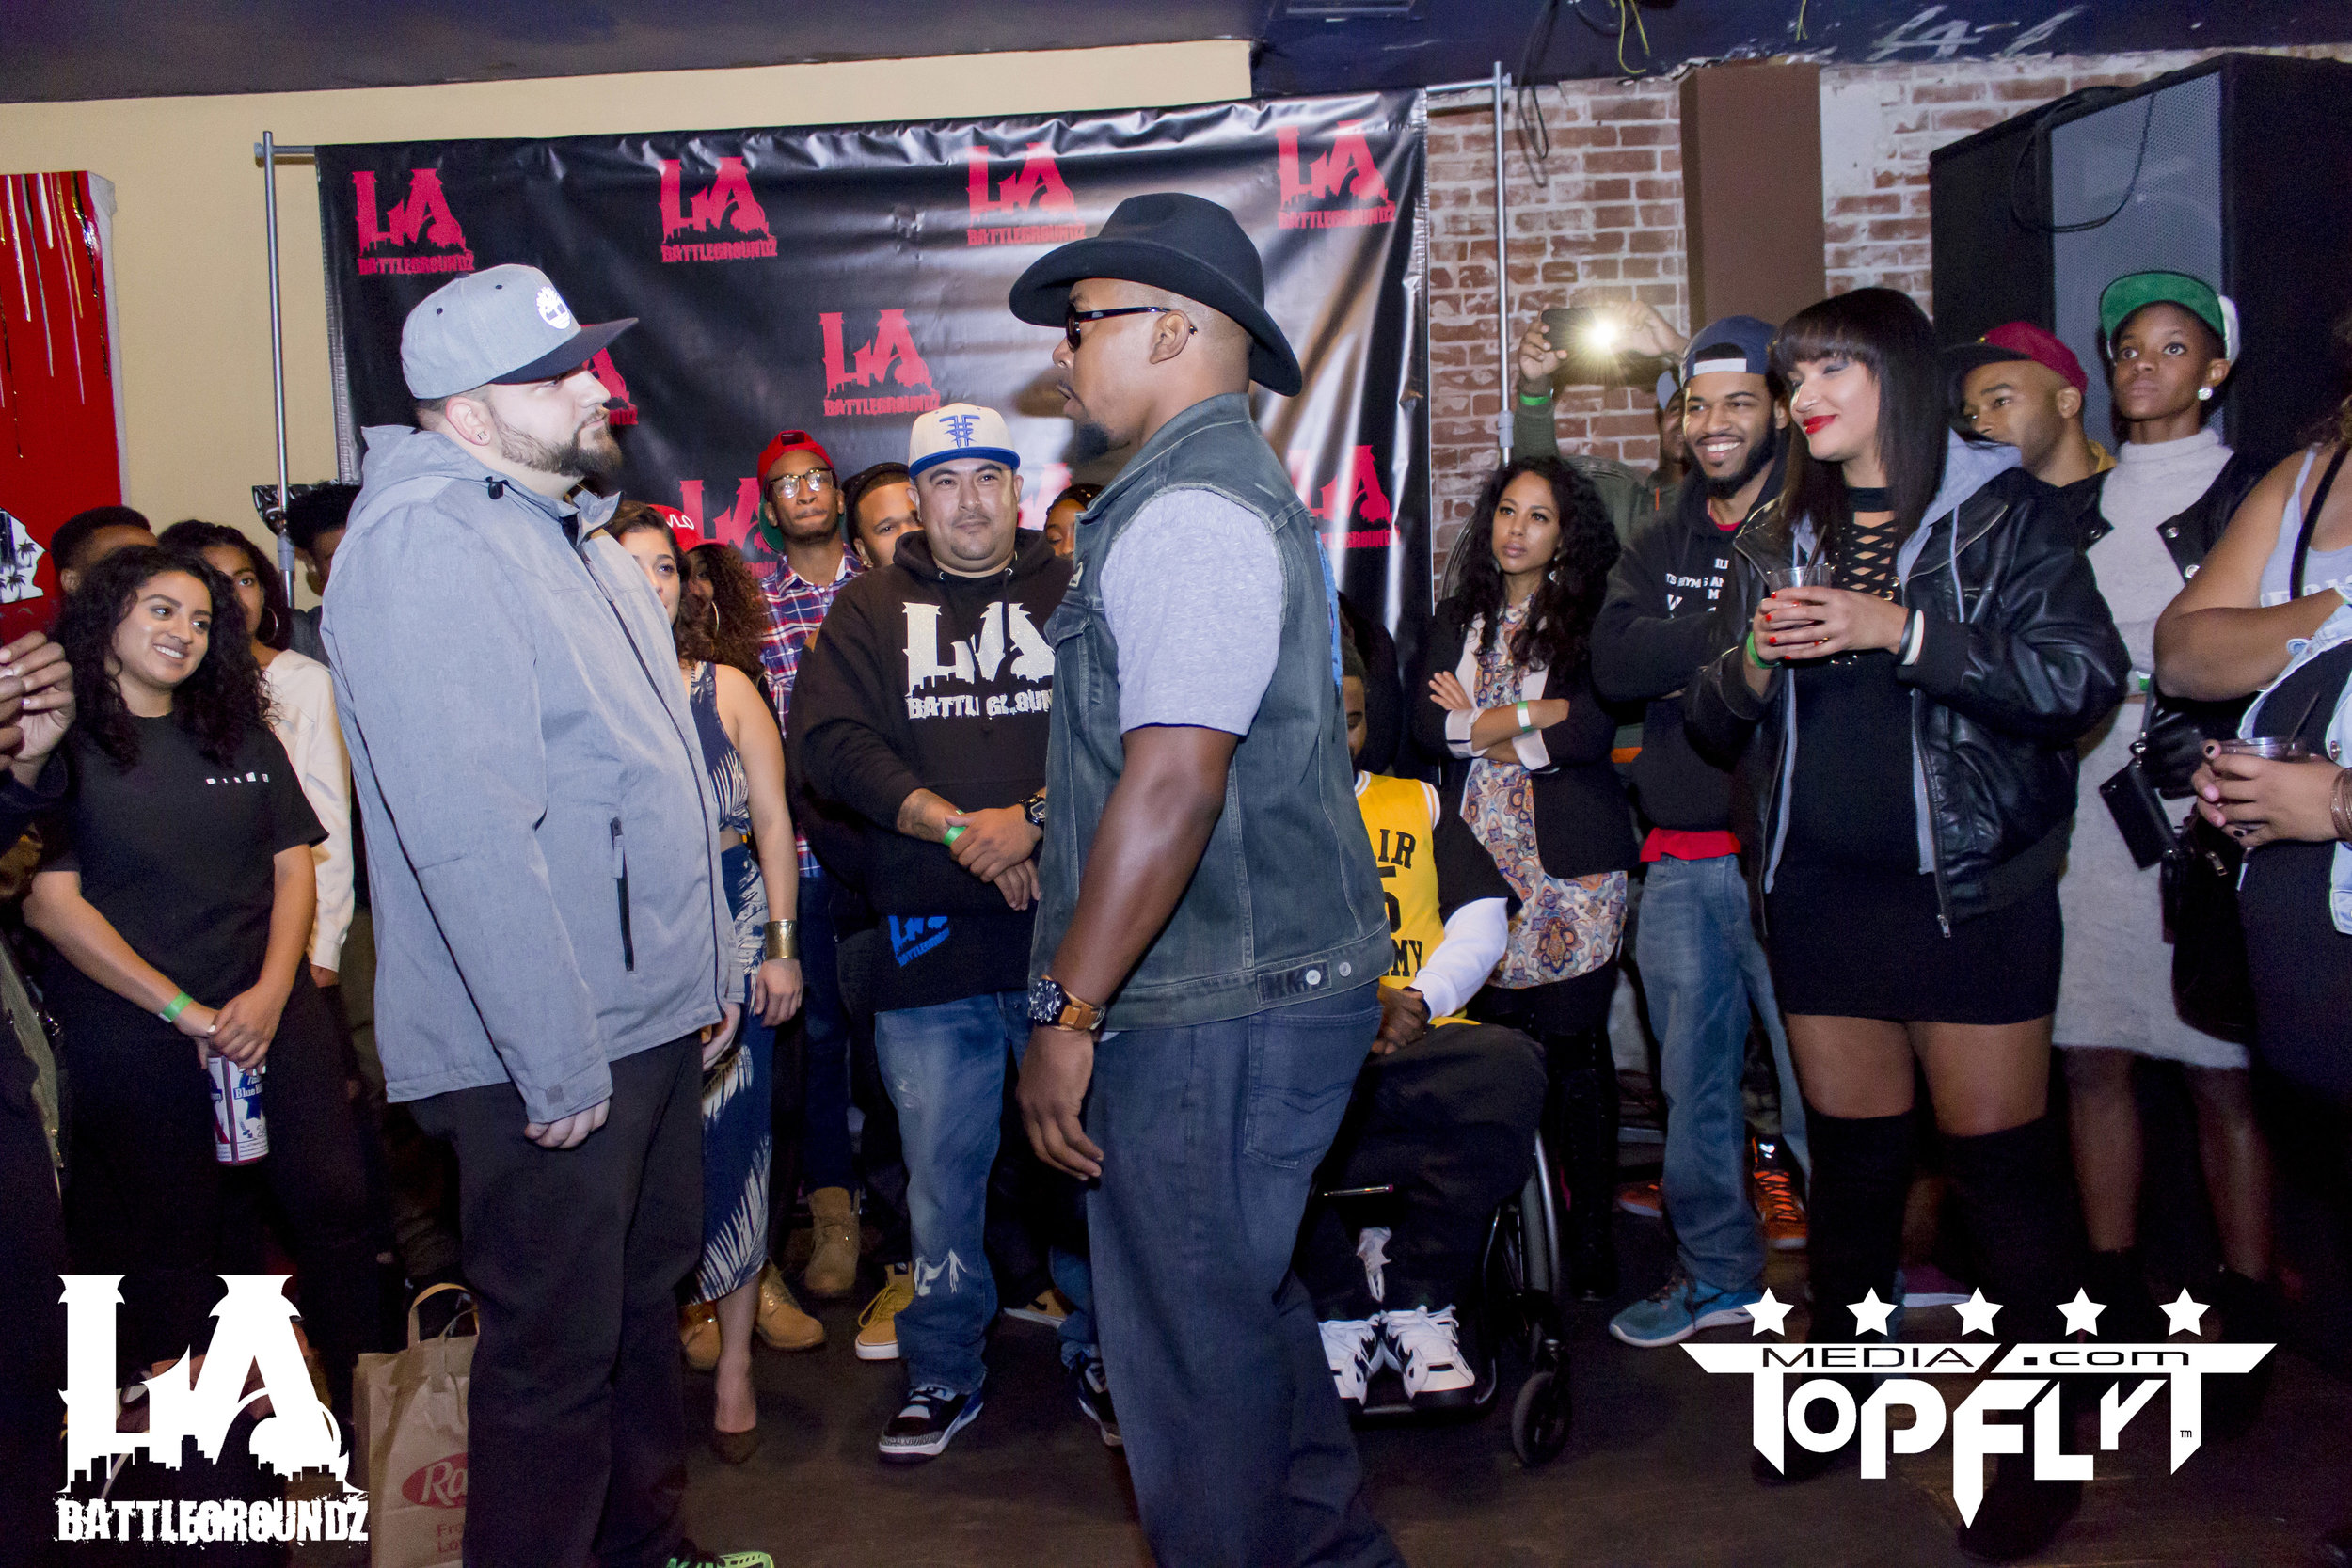 LA Battlegroundz - Decembarfest - The Christening_44.jpg